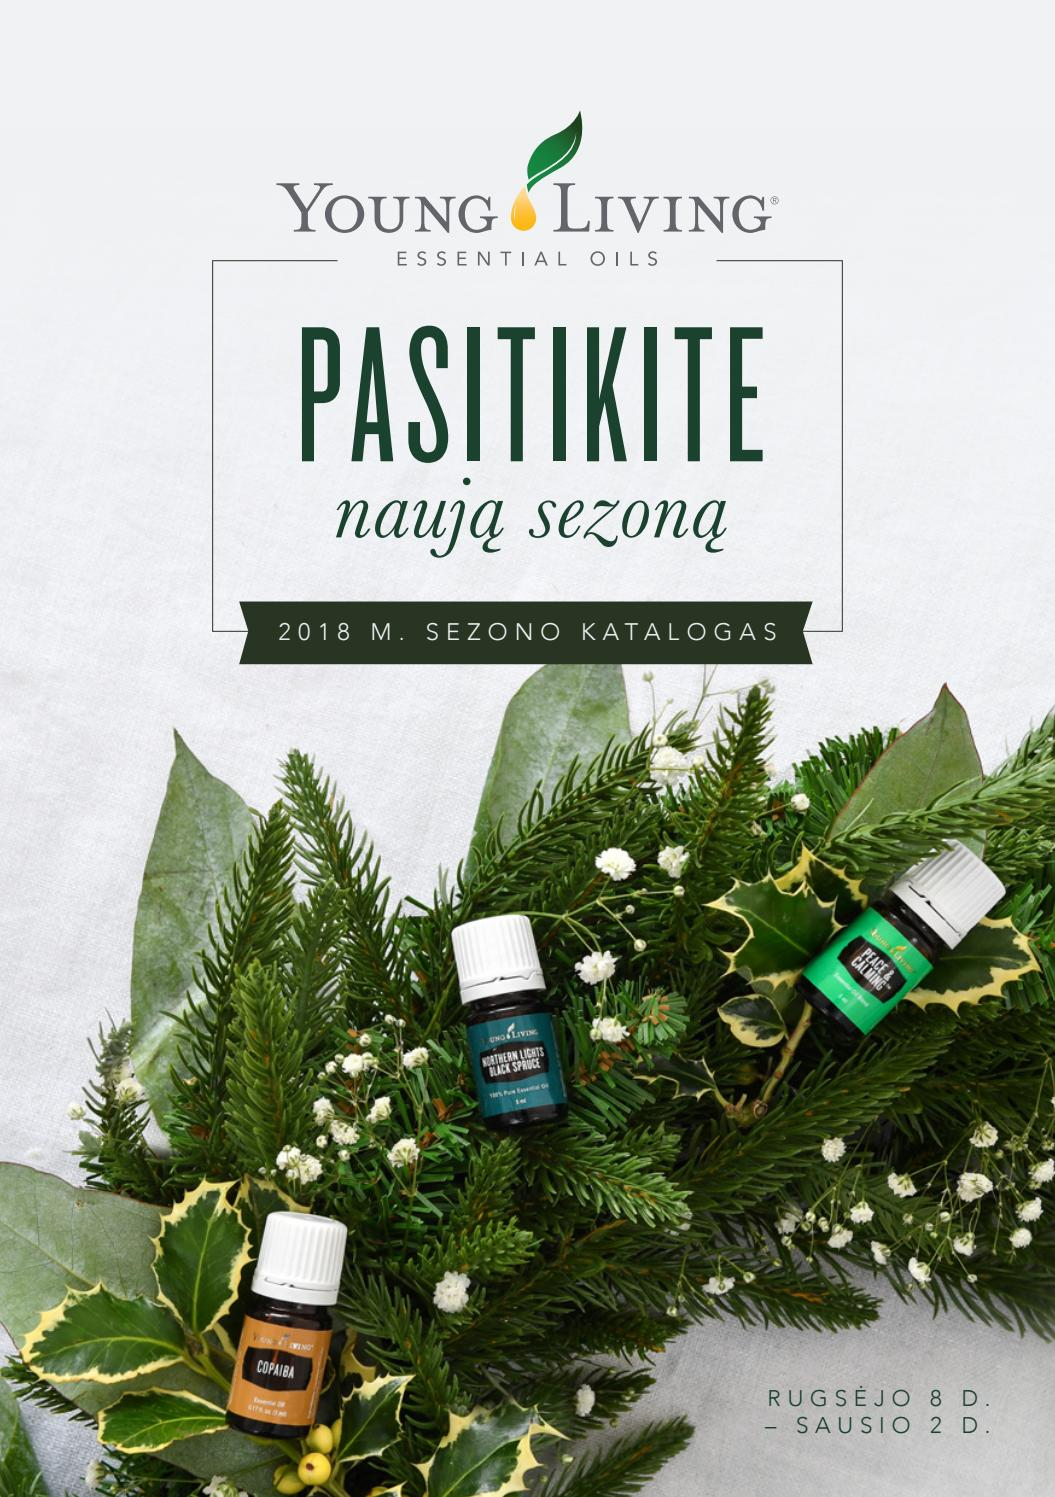 Young Living Christmas Tree.2018 M Sezono Katalogas Eur Lt By Young Living Europe Issuu